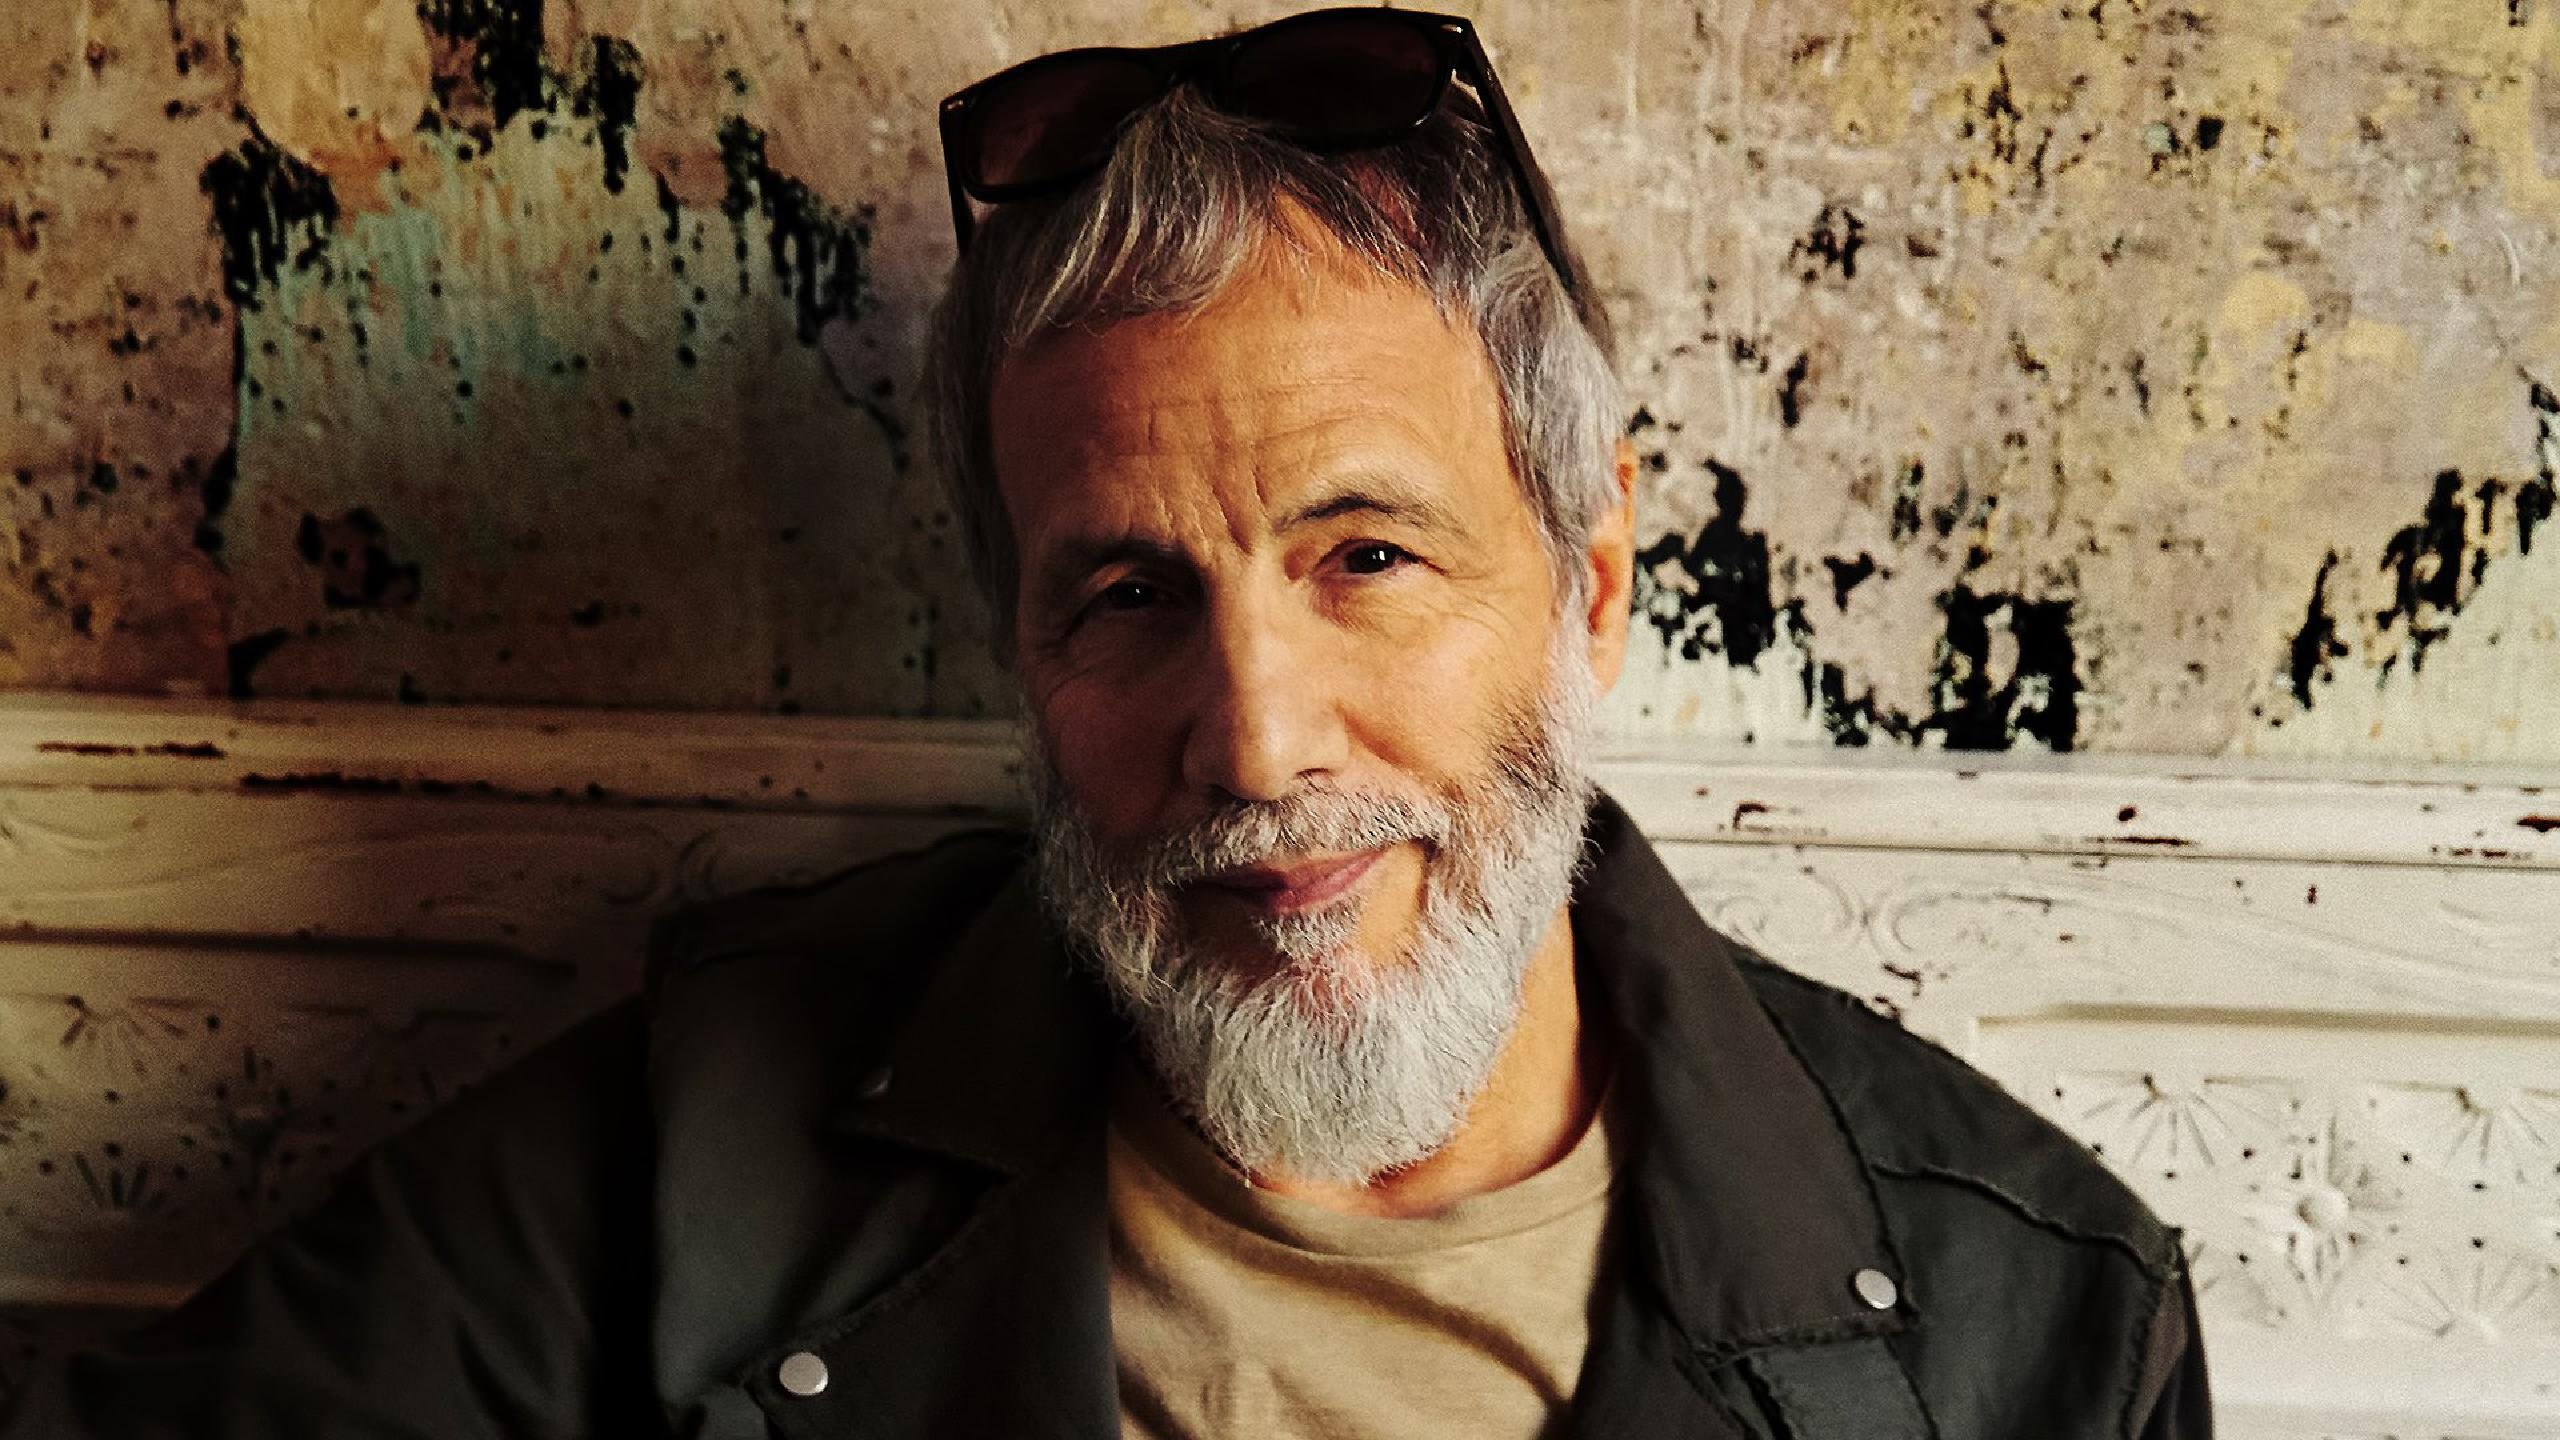 Yusuf Islam Tour 2020 Yusuf Islam tour dates 2019 2020. Yusuf Islam tickets and concerts